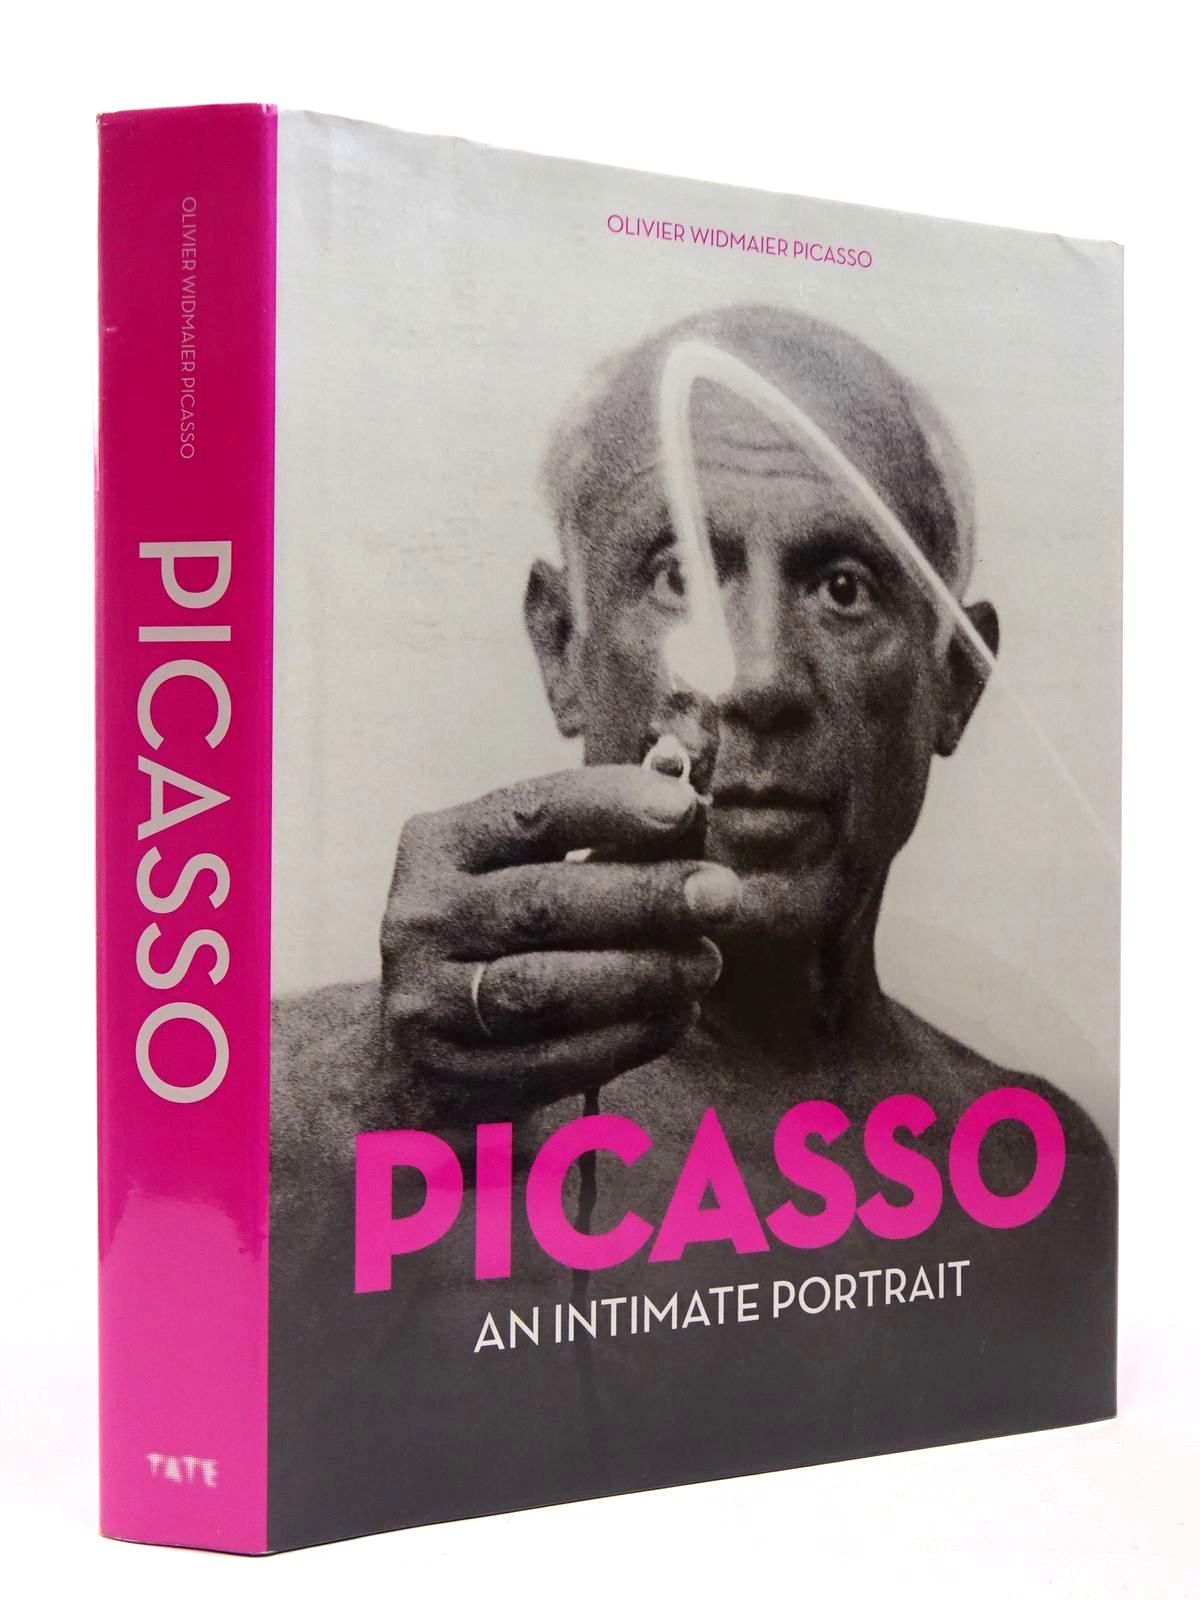 Photo of PICASSO AN INTIMATE PORTRAIT written by Picasso, Oliver Widmaier illustrated by Picasso, Pablo published by Tate Publishing (STOCK CODE: 2129563)  for sale by Stella & Rose's Books